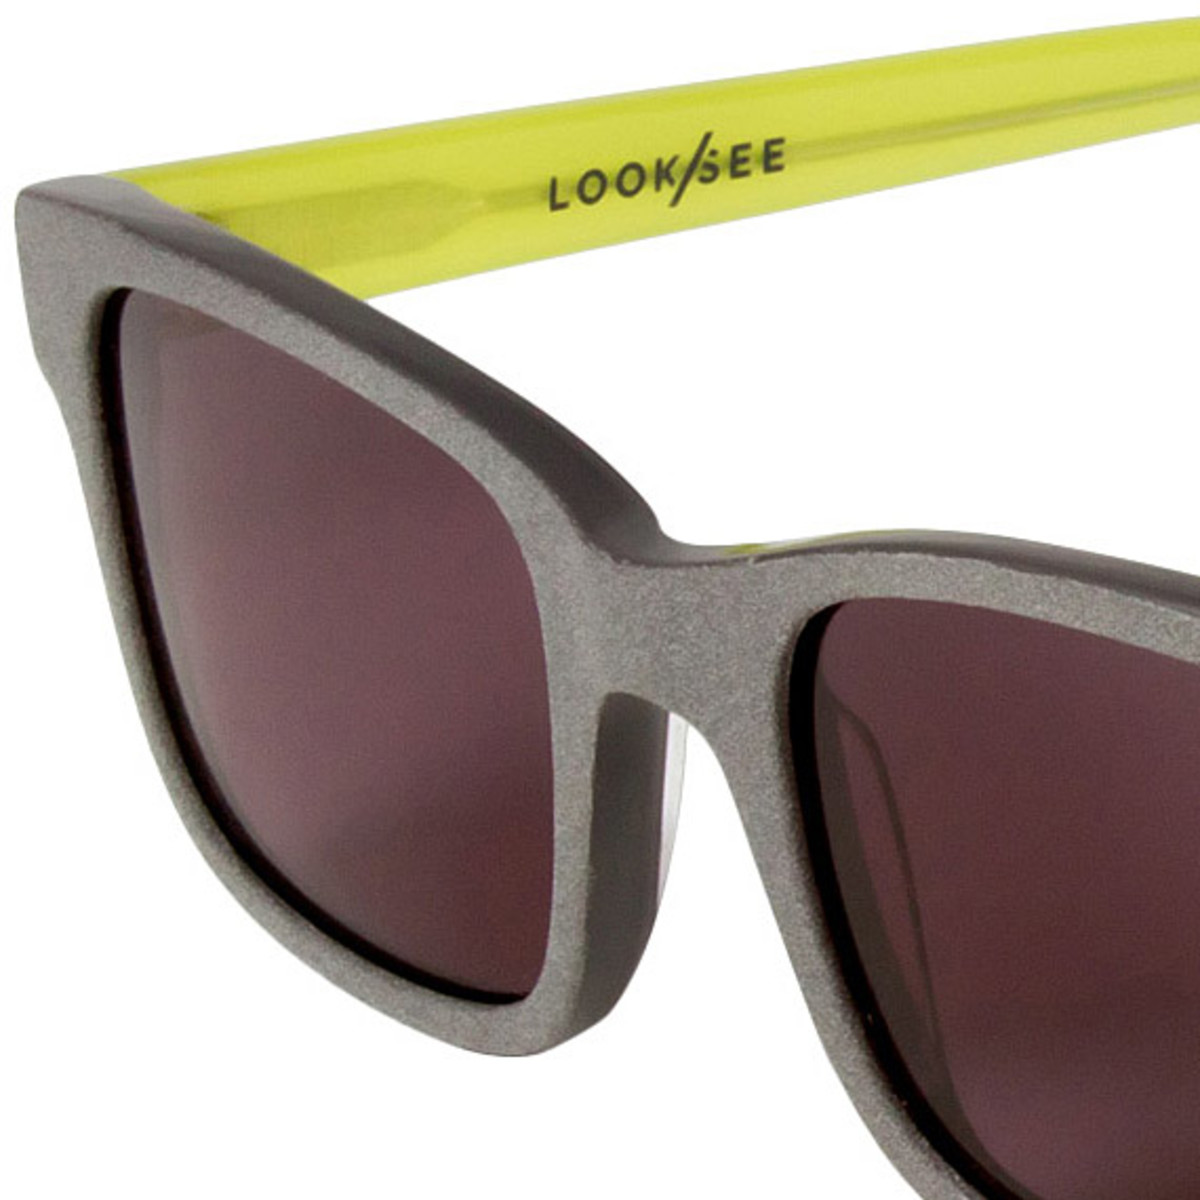 look-see-refelctive-sunglasses-02